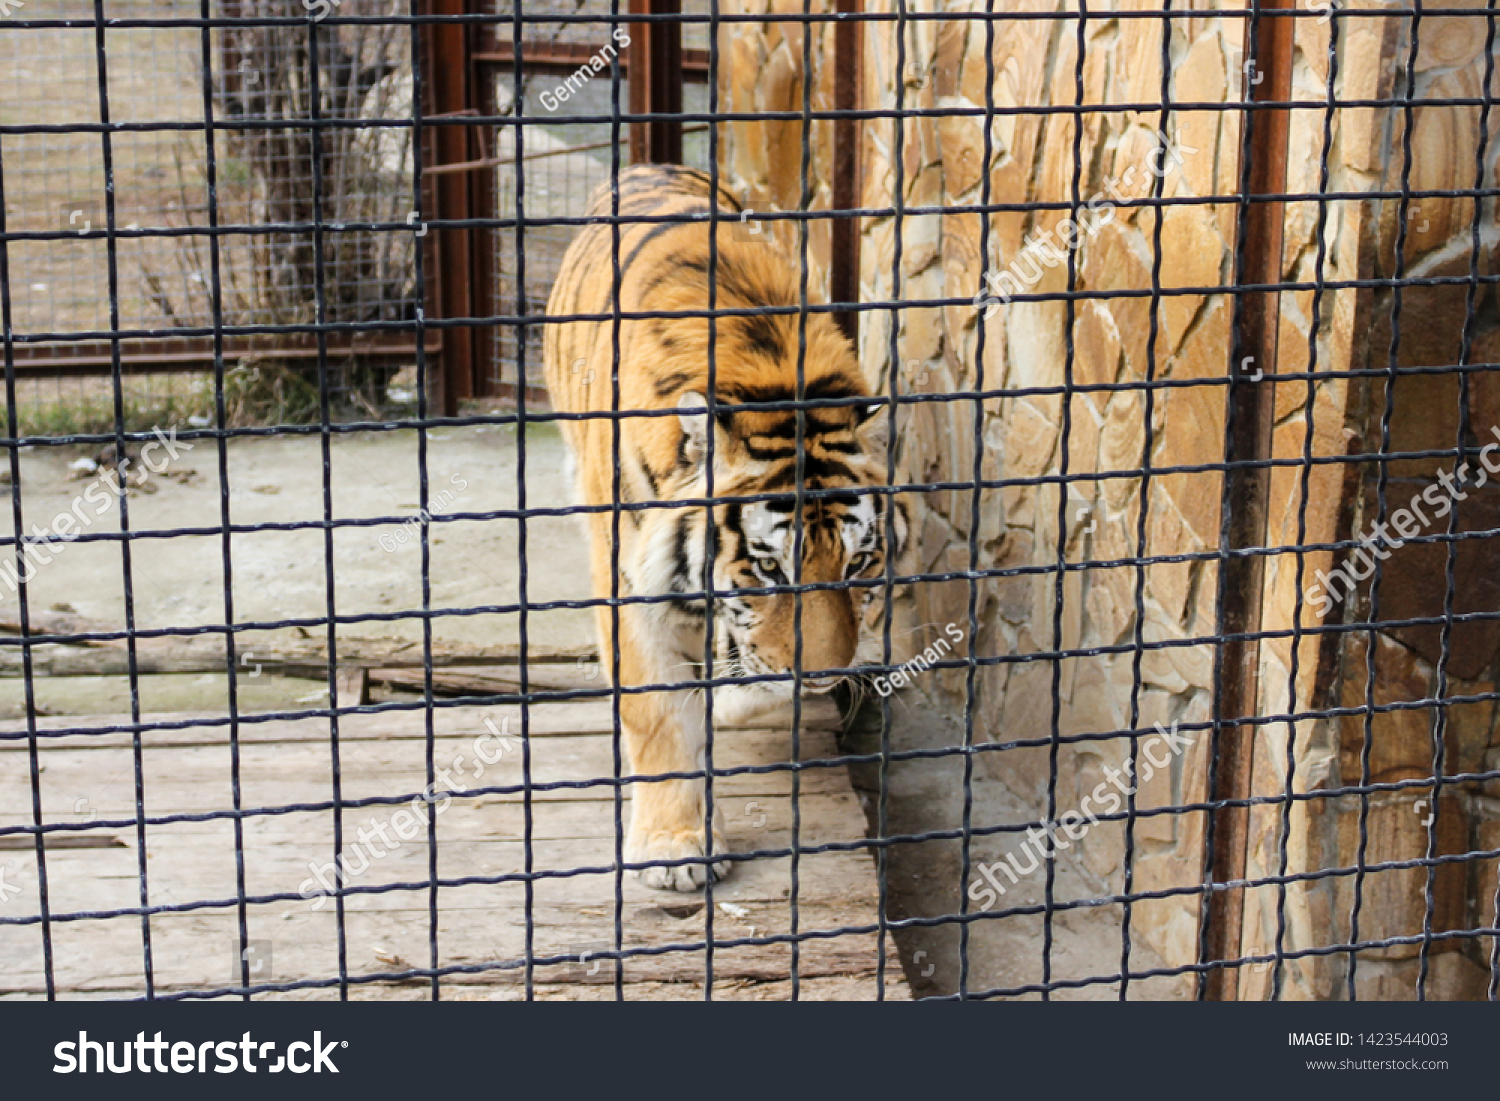 Tiger behind bars. Predators of the Belogorsk Safari Taigan Park. #1423544003